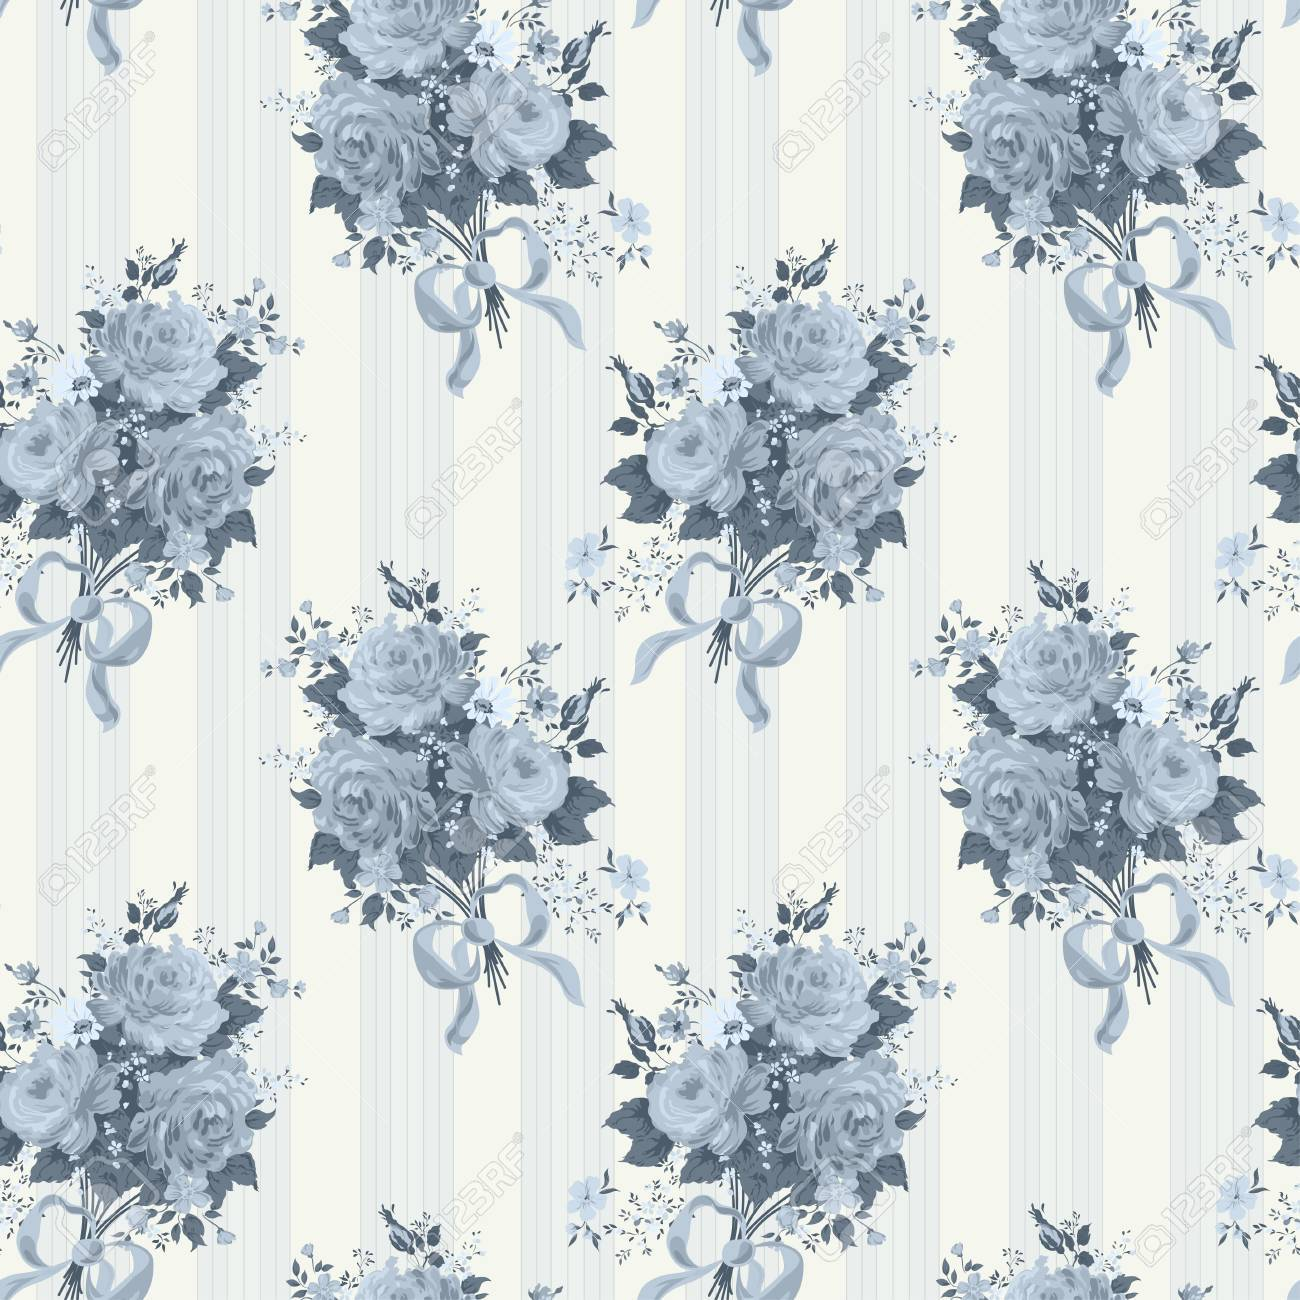 Vintage Rose Wallpaper Pattern Vector Background In Blue Royalty Free Cliparts Vectors And Stock Illustration Image 34457035